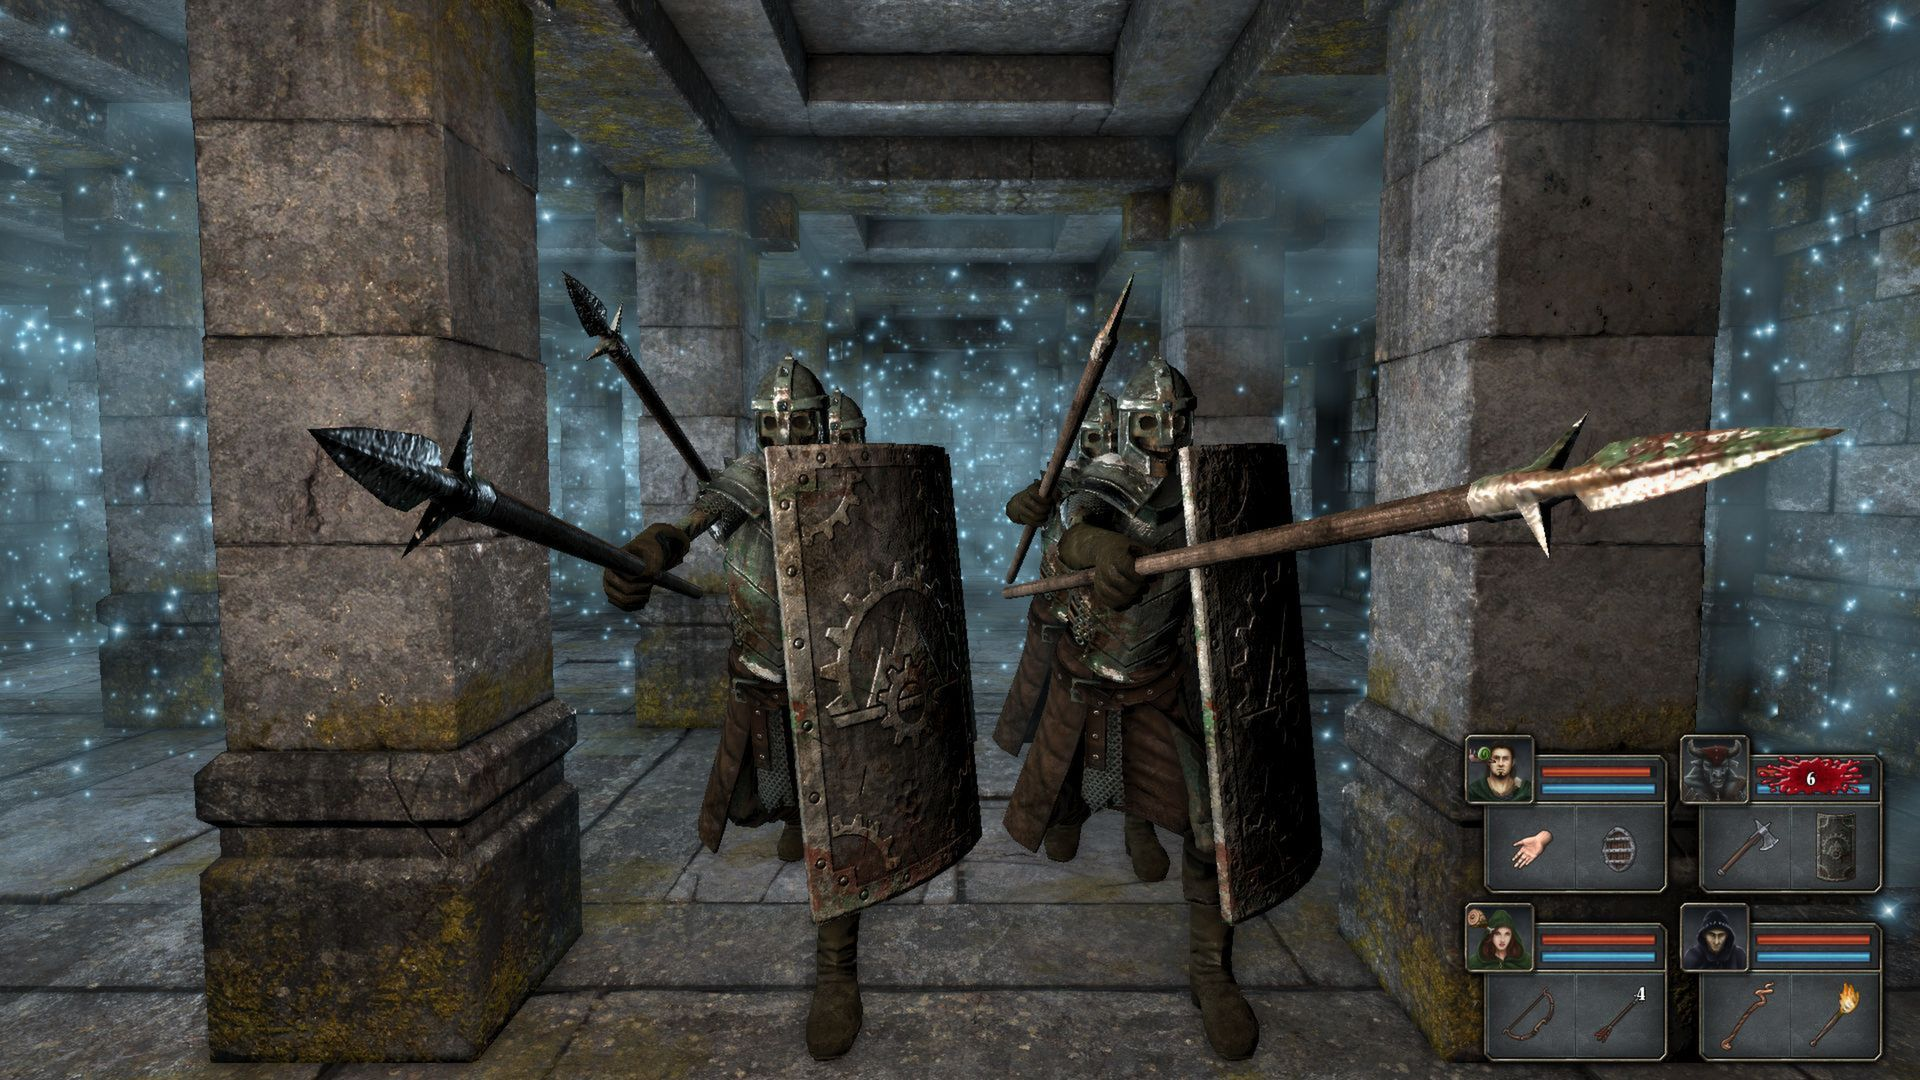 Legend Of Grimrock screenshot 2